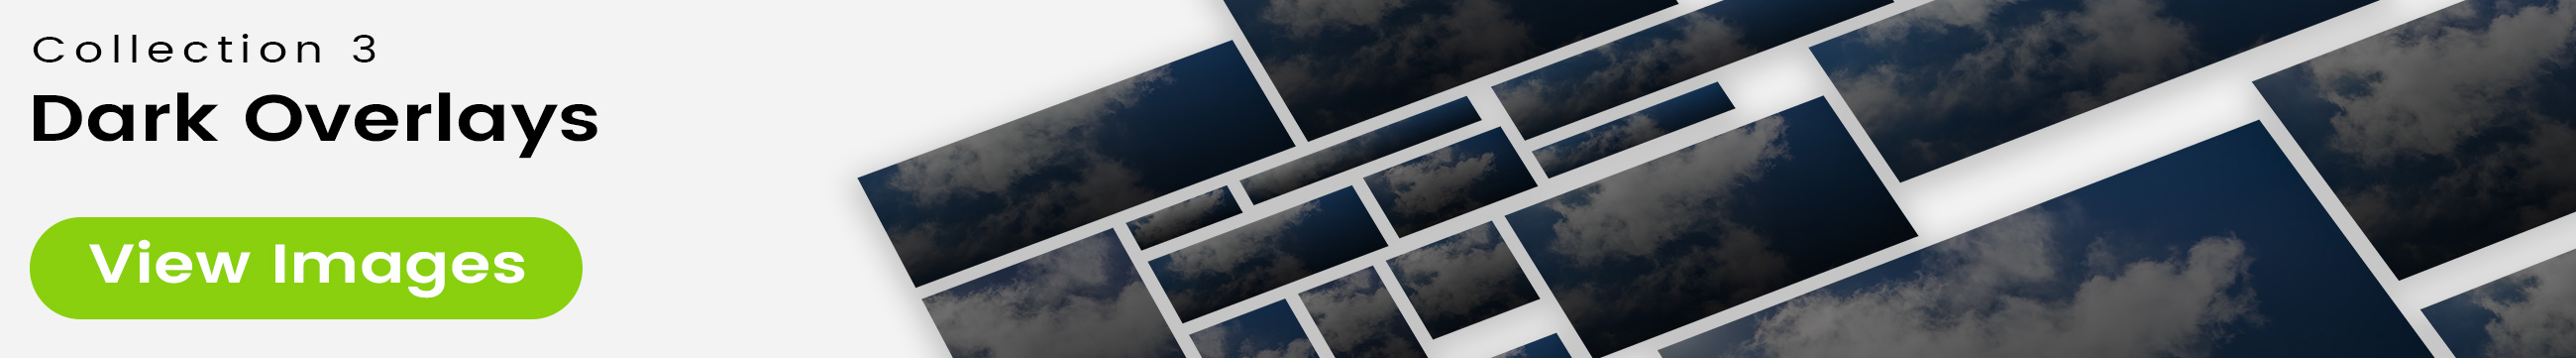 See 25 bonus images included with clouds stock image 9474. Collection 3 of 4 features a dark overlay design.